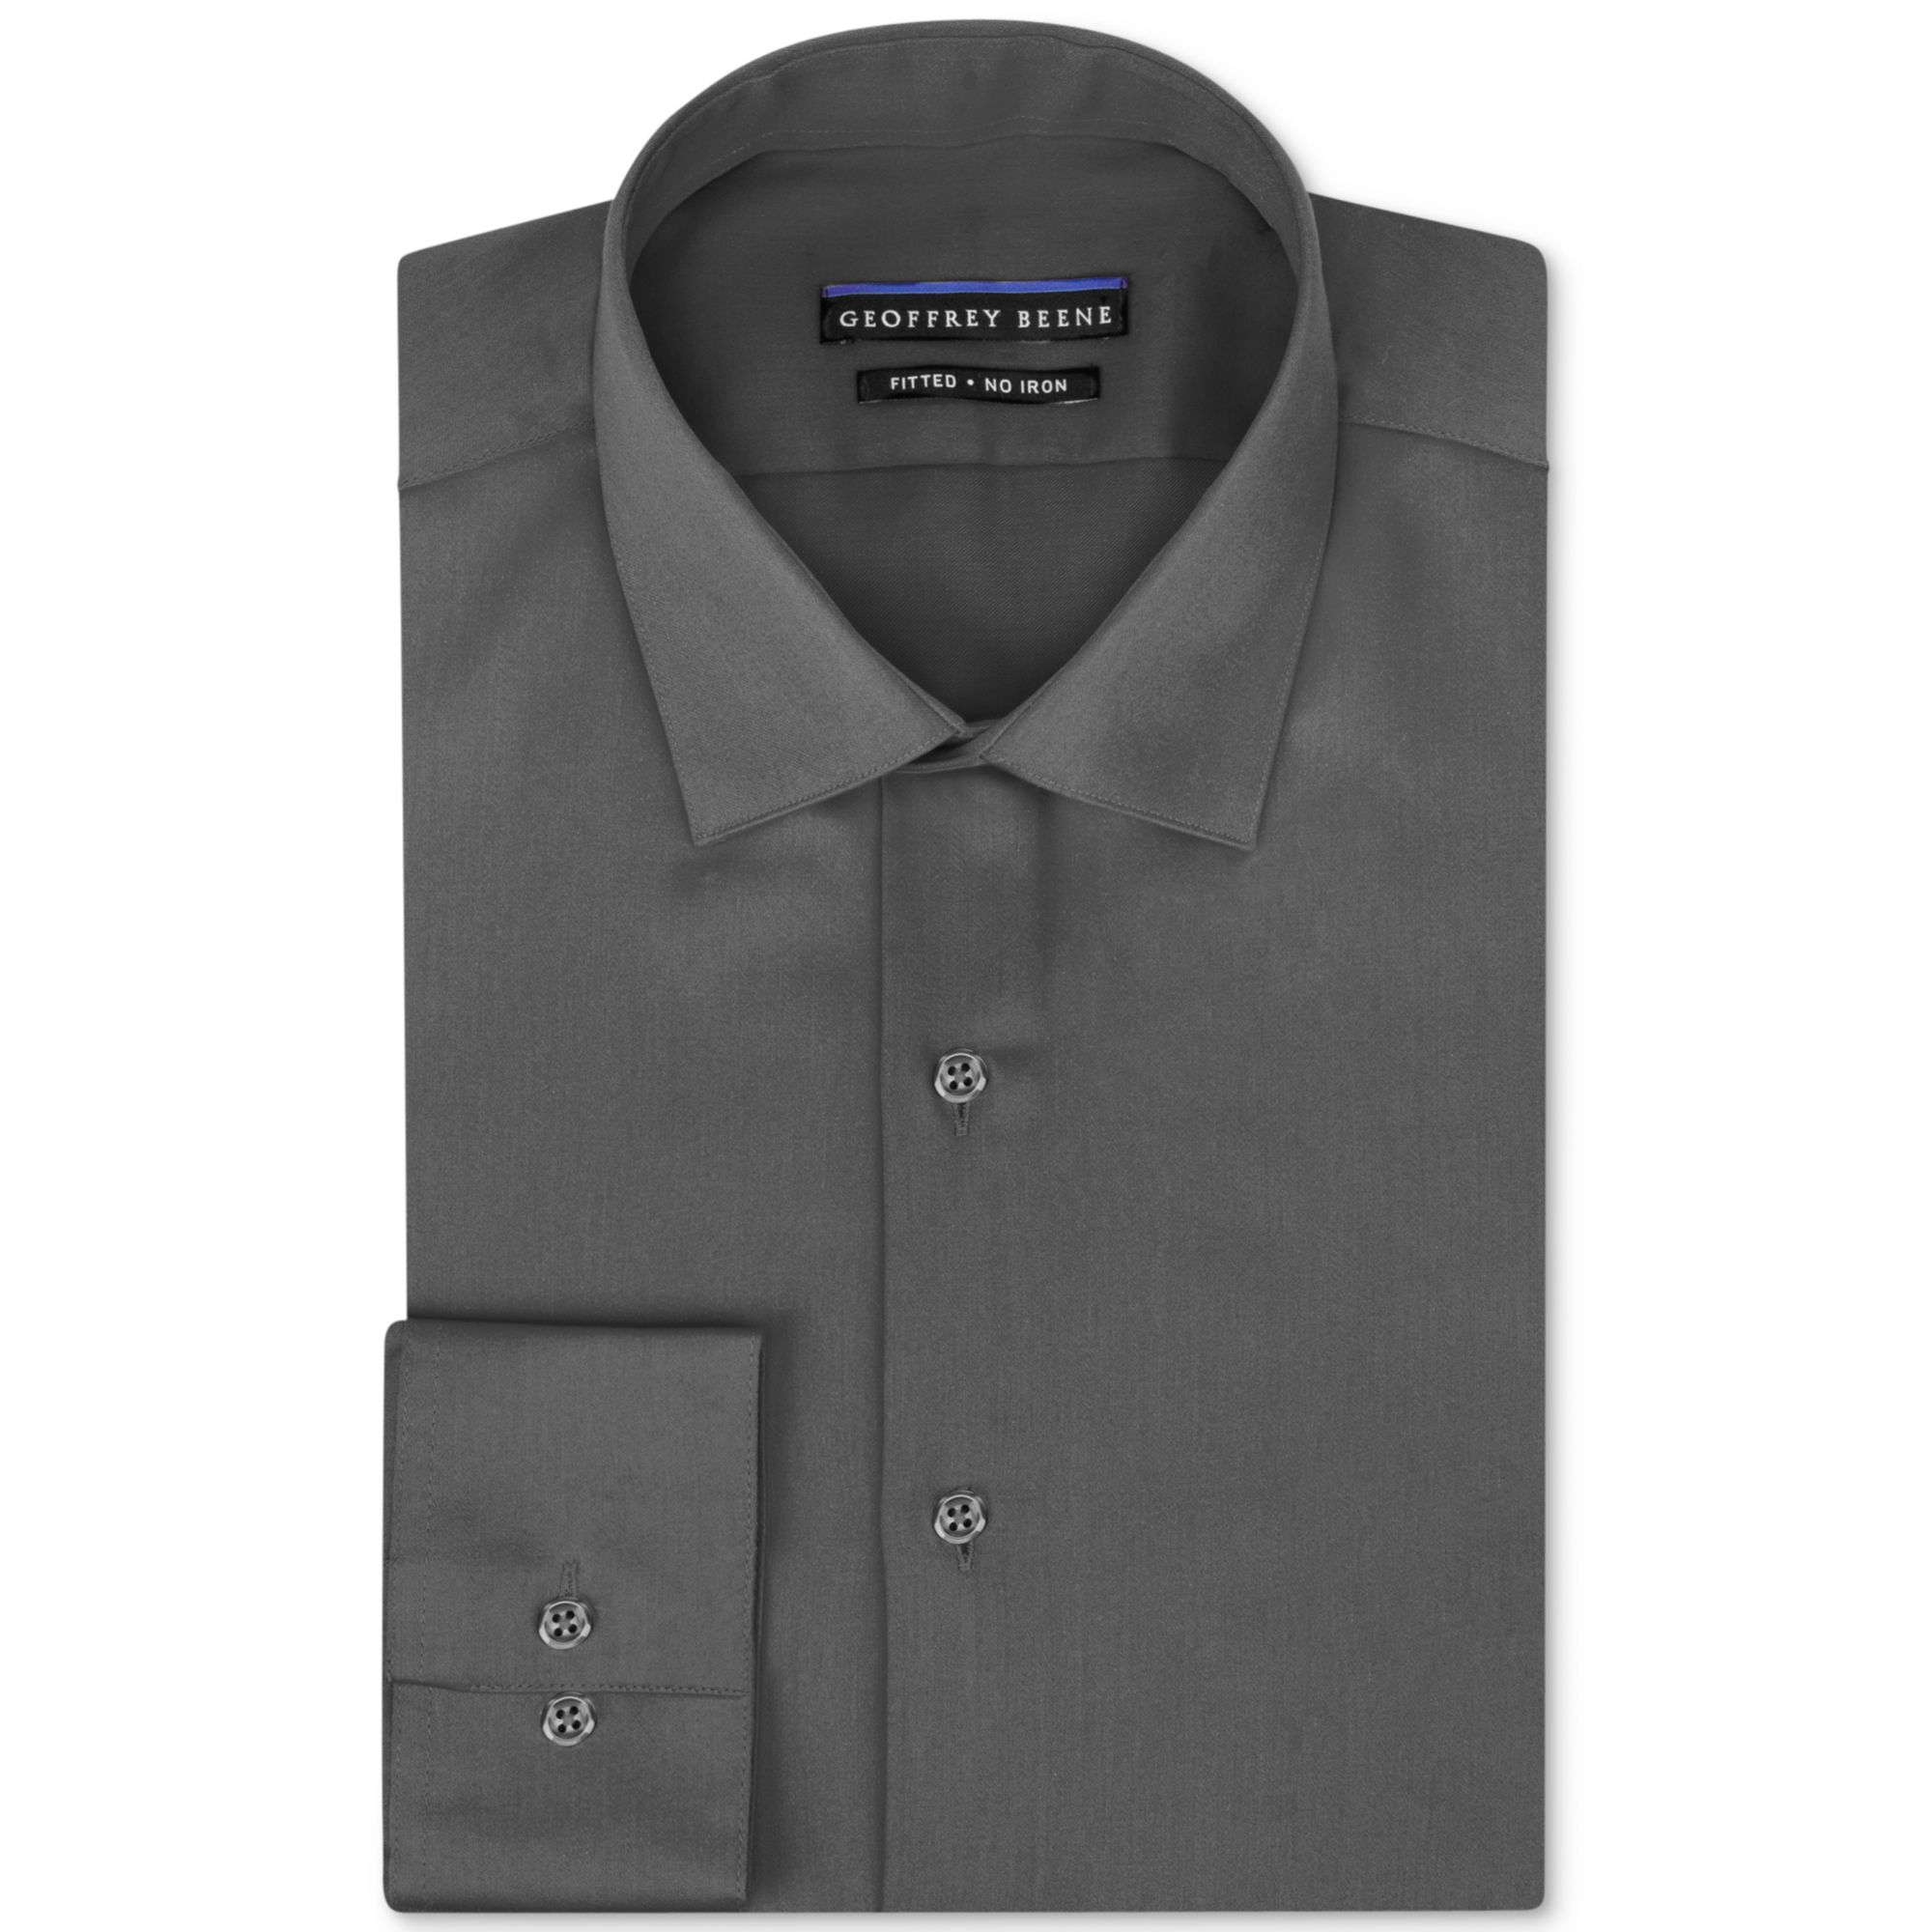 Geoffrey beene non iron fitted stretch sateen solid dress for No iron shirts mens